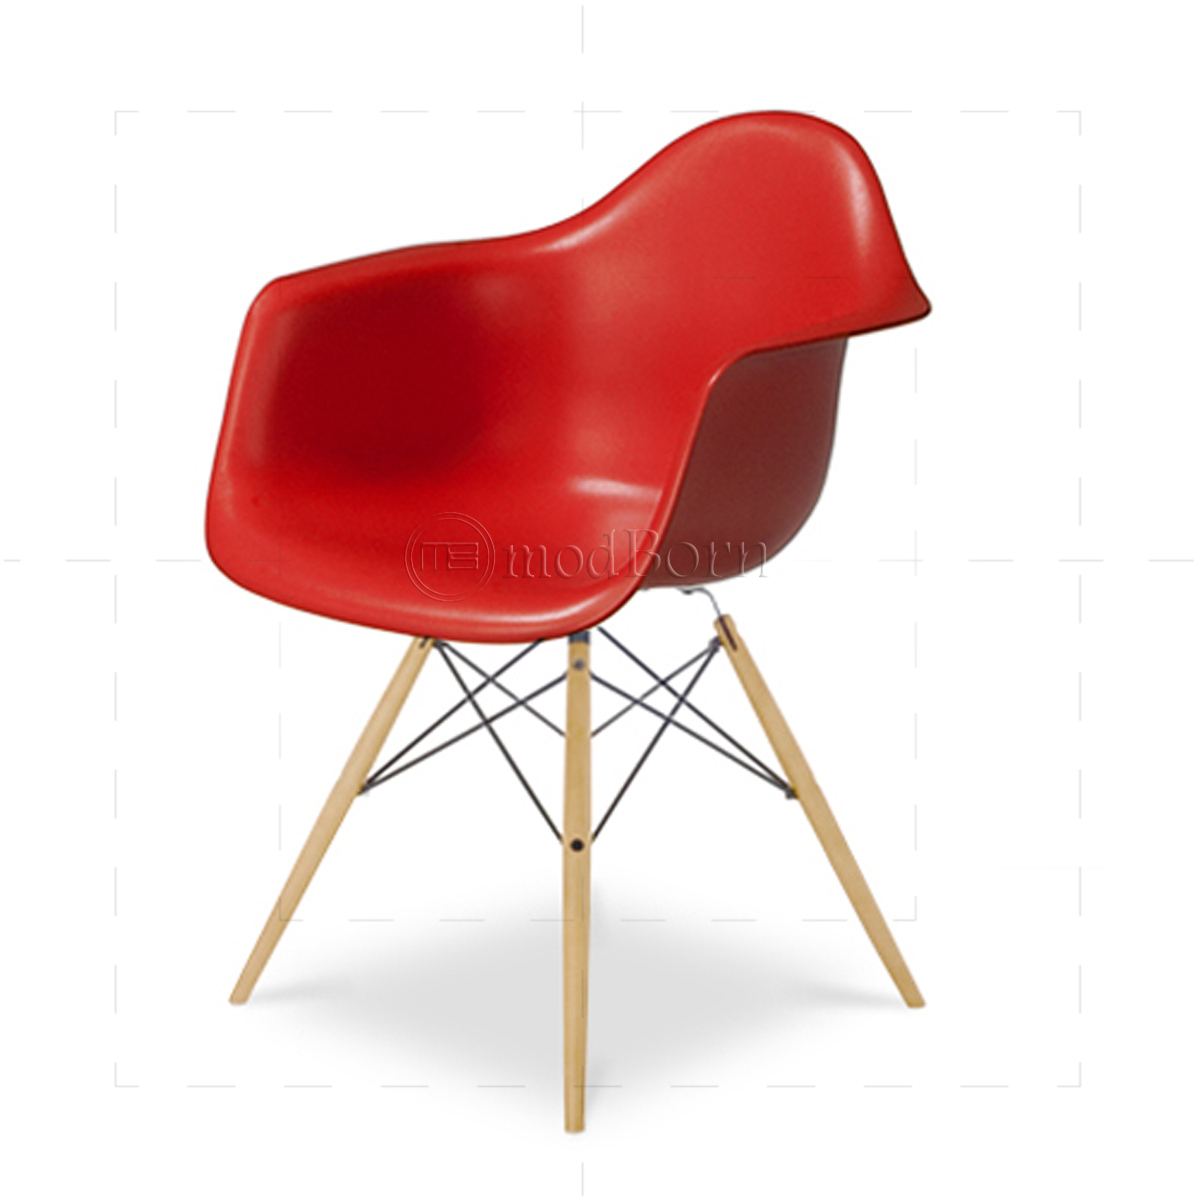 Charmant Eames Style Dining DAW Arm Chair RED   Replica